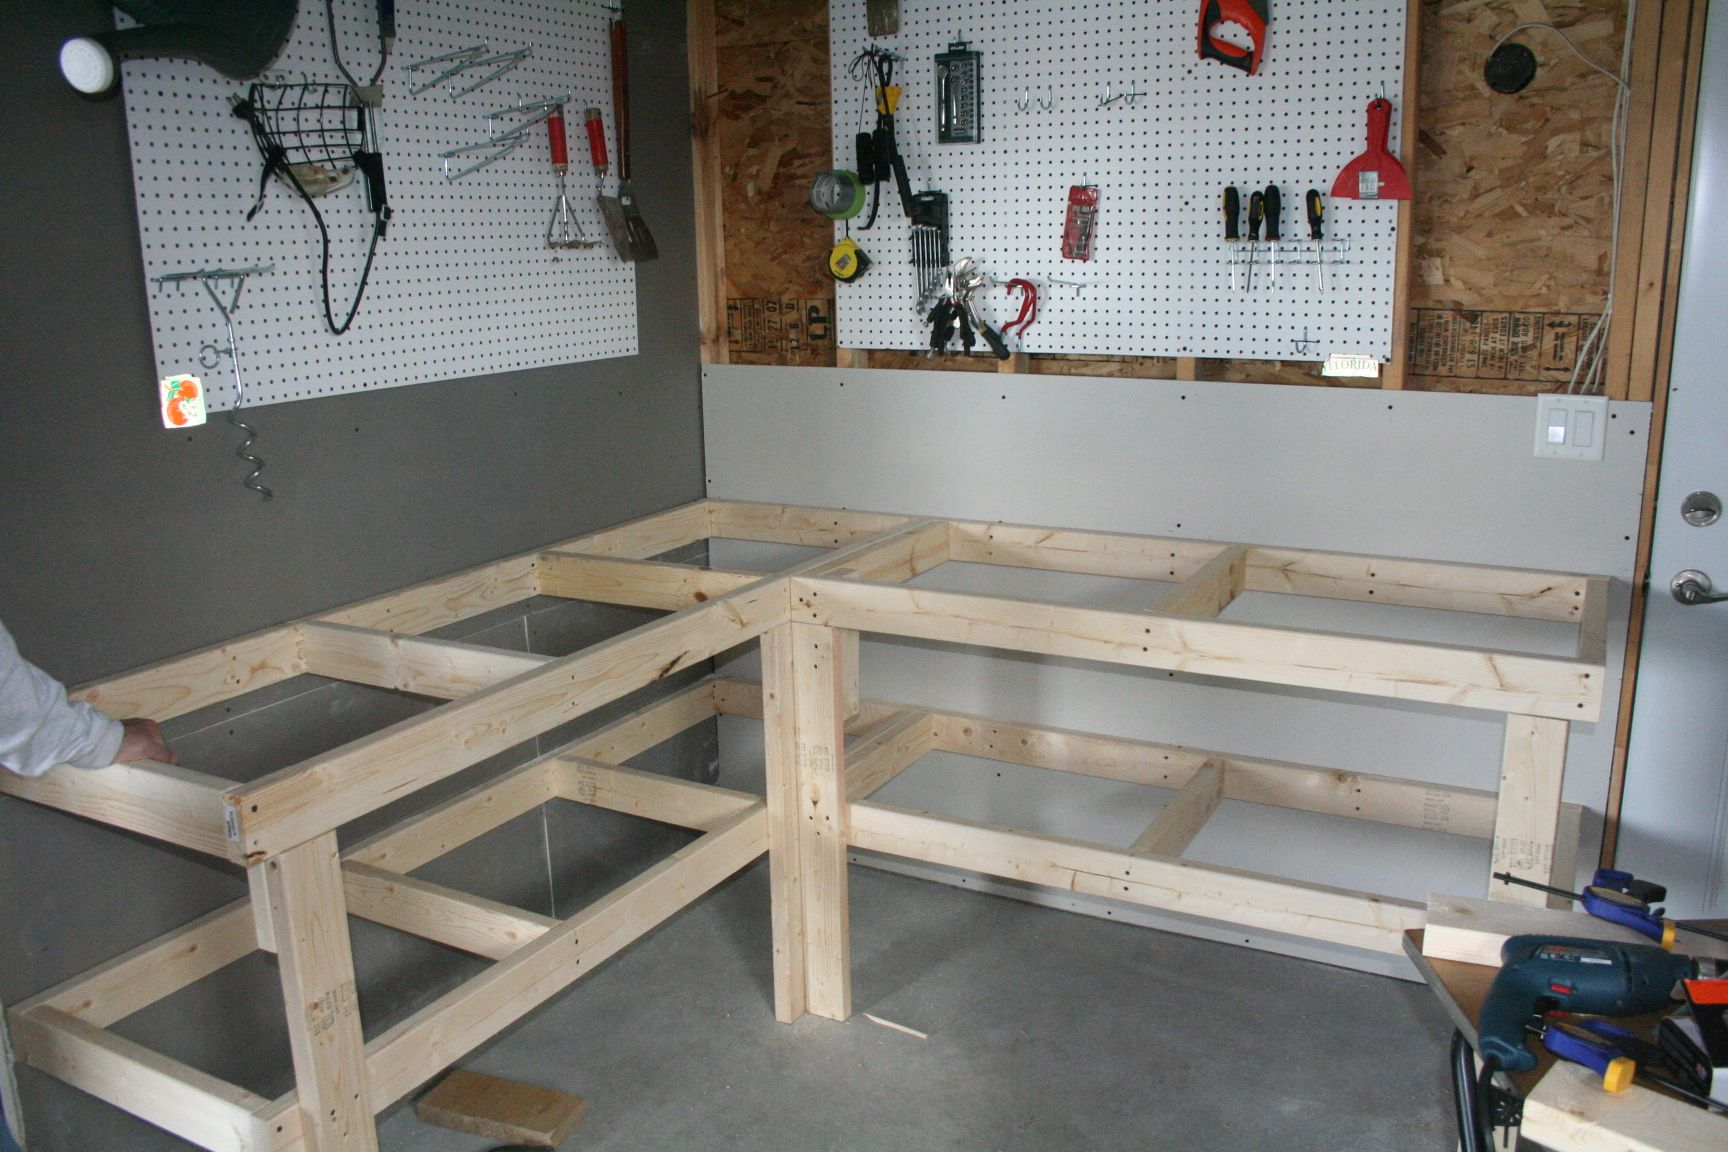 Garage Workbench And Storage Built Dad Tough House Diy Garage Diy Workbench